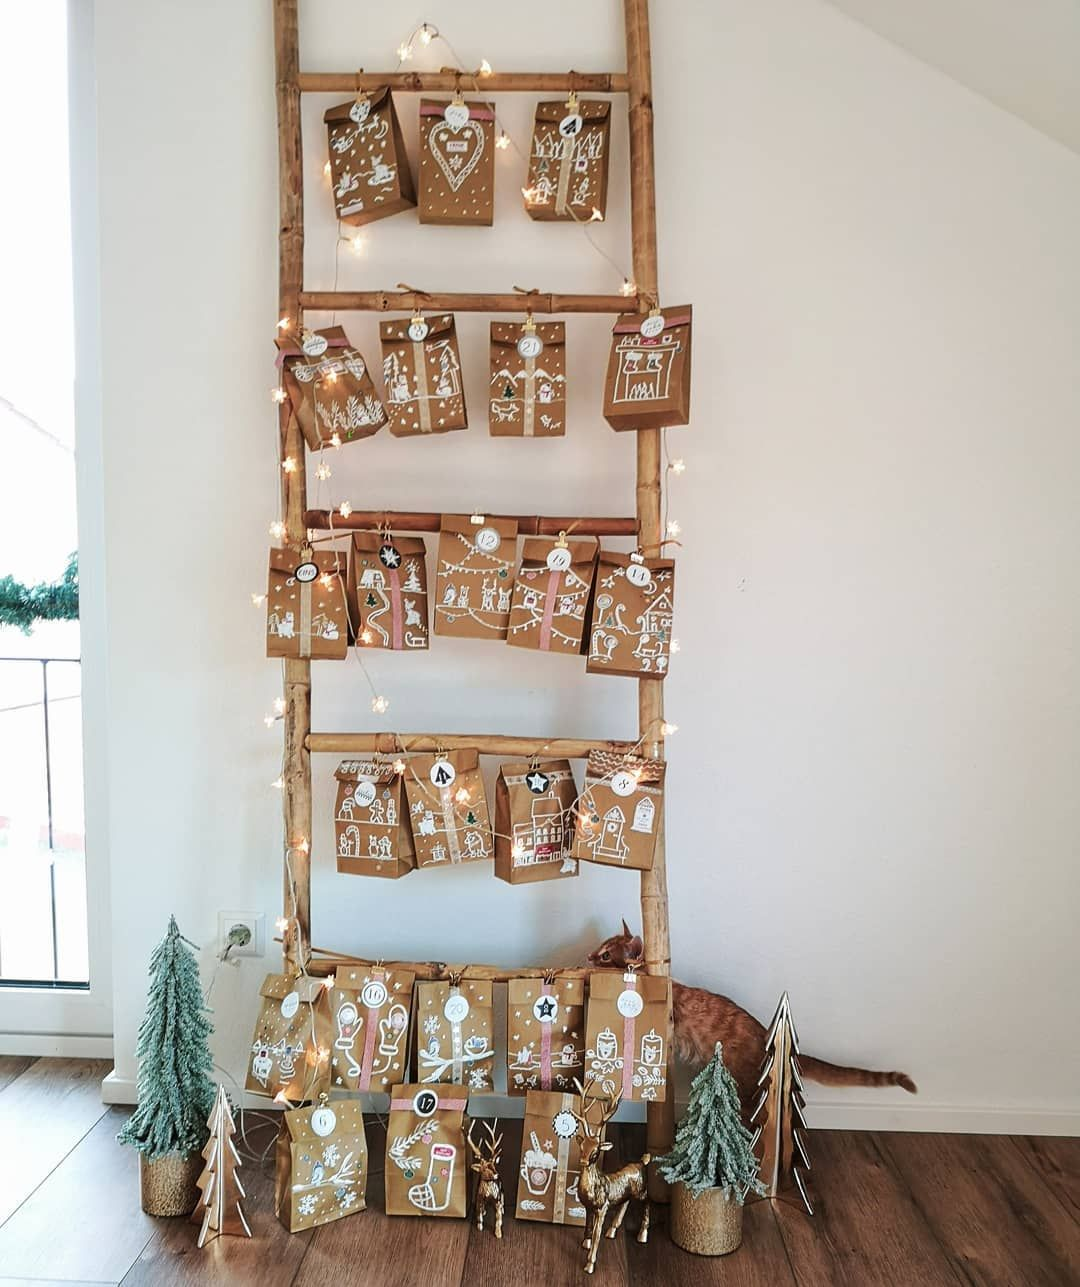 Adventskalender für den Freund: Geniale DIY-Ideen | desired.de